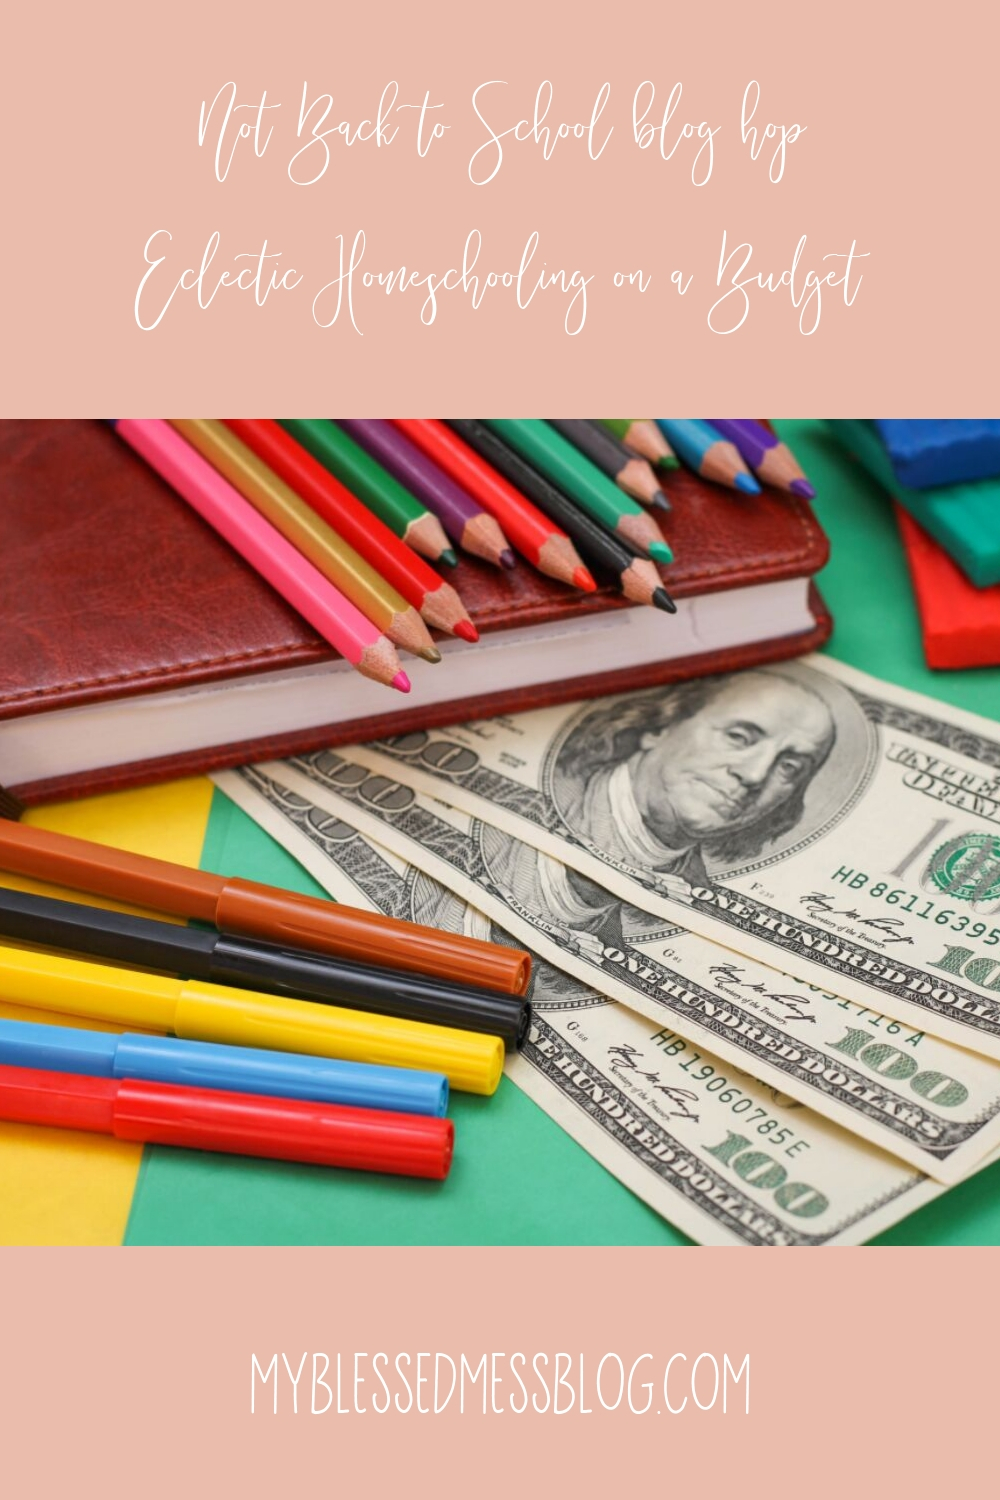 NOT Back to School Blog Hop – Eclectic Homeschooling on a Budget